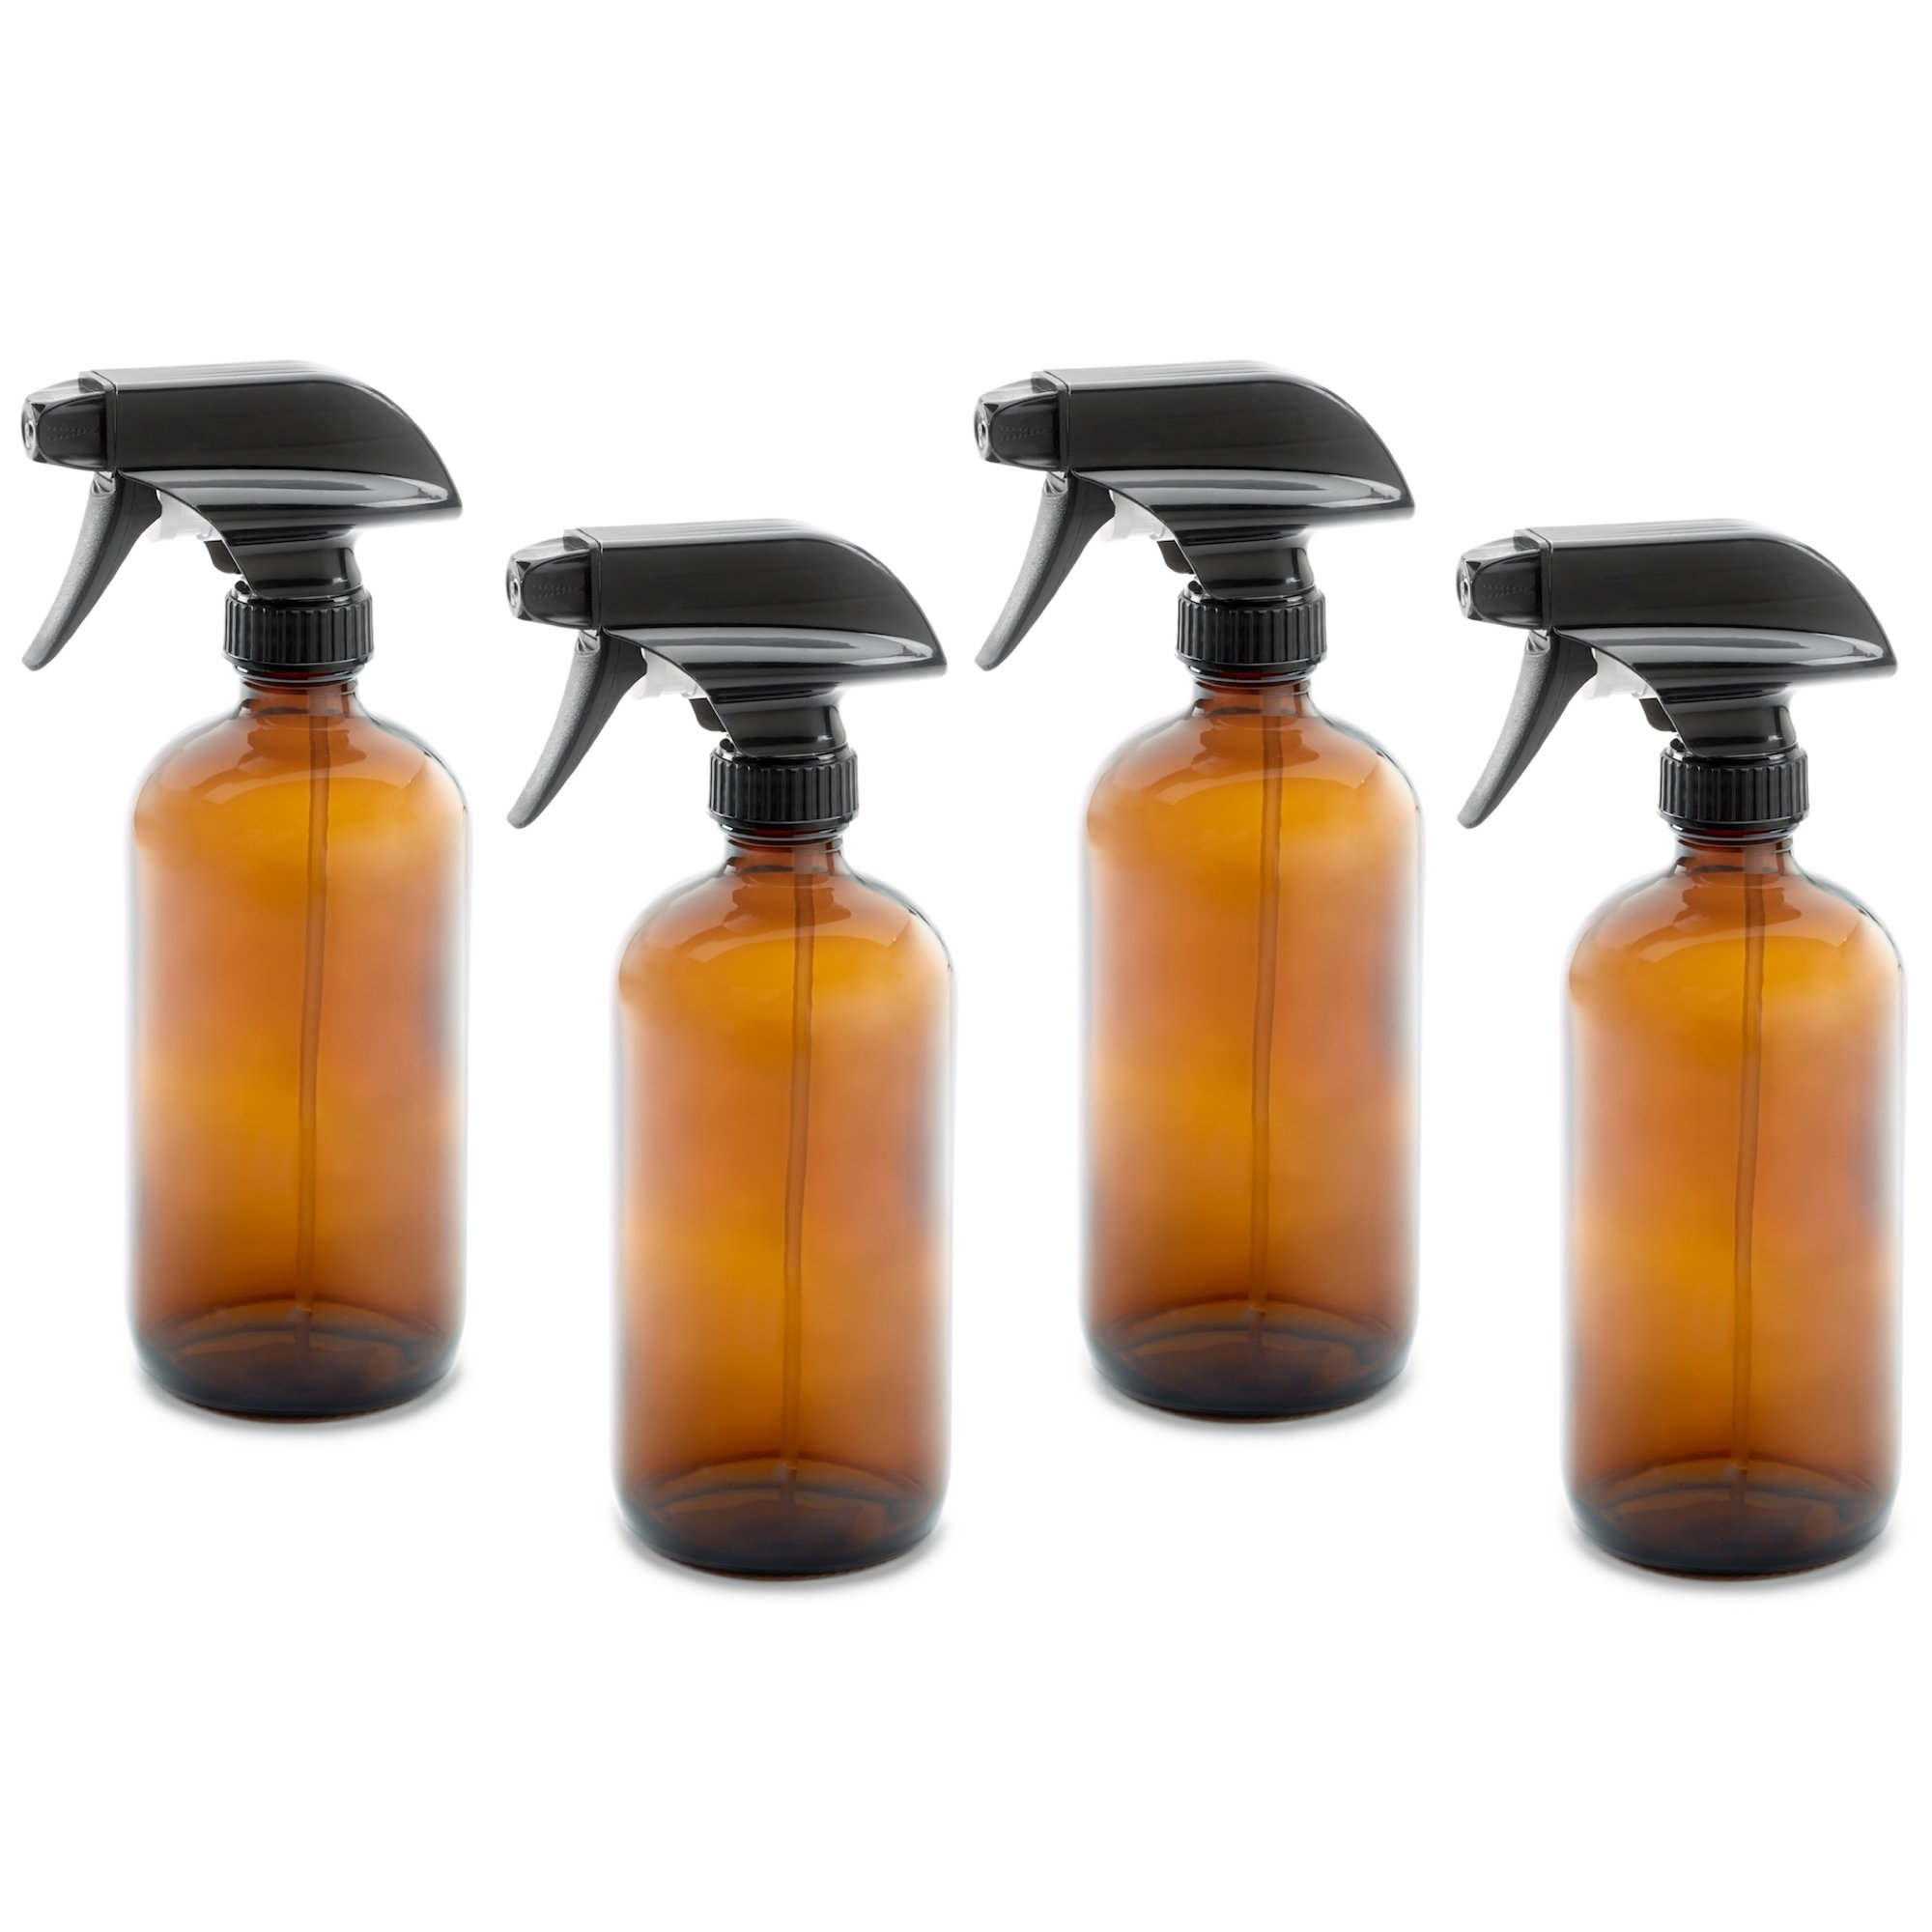 16oz Empty Amber Dark Brown Glass Spray Bottles w/Labels, Caps, and Funnel - Mist & Stream Trigger Sprayer - BPA Free - Boston Round Heavy Duty Bottle - For Essential Oils, Cleaning, Kitchen, Hair